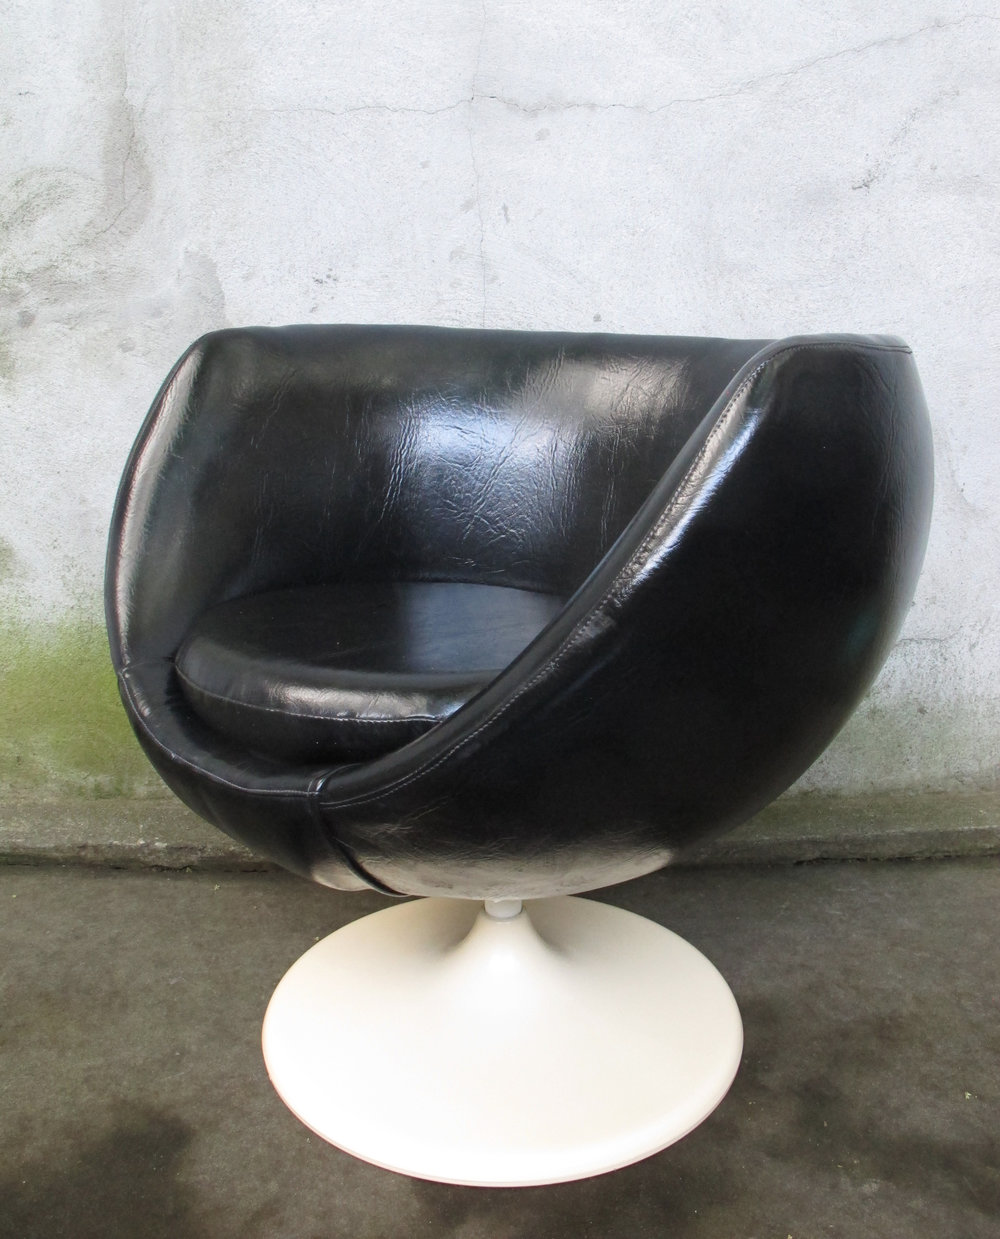 MID CENTURY SPACE AGE POD CHAIR BY LUSCH ERZEUGNIS